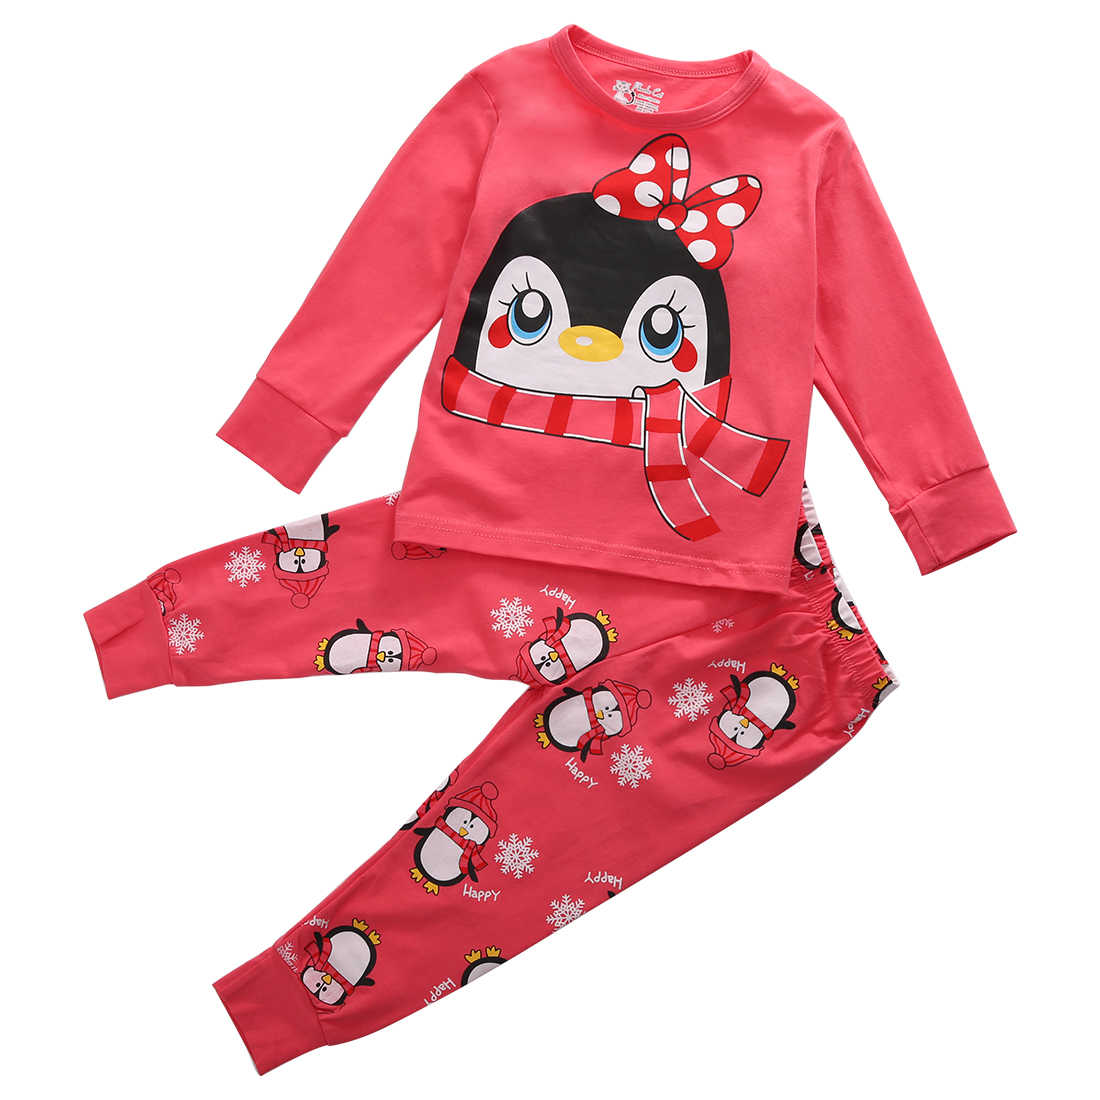 0-3 Years,SO-buts Toddler Newborn Baby Boy Girl Autumn Winter Lovely Cartoon T shirt Tops Pants Pajamas Sleepwear Outfits Set